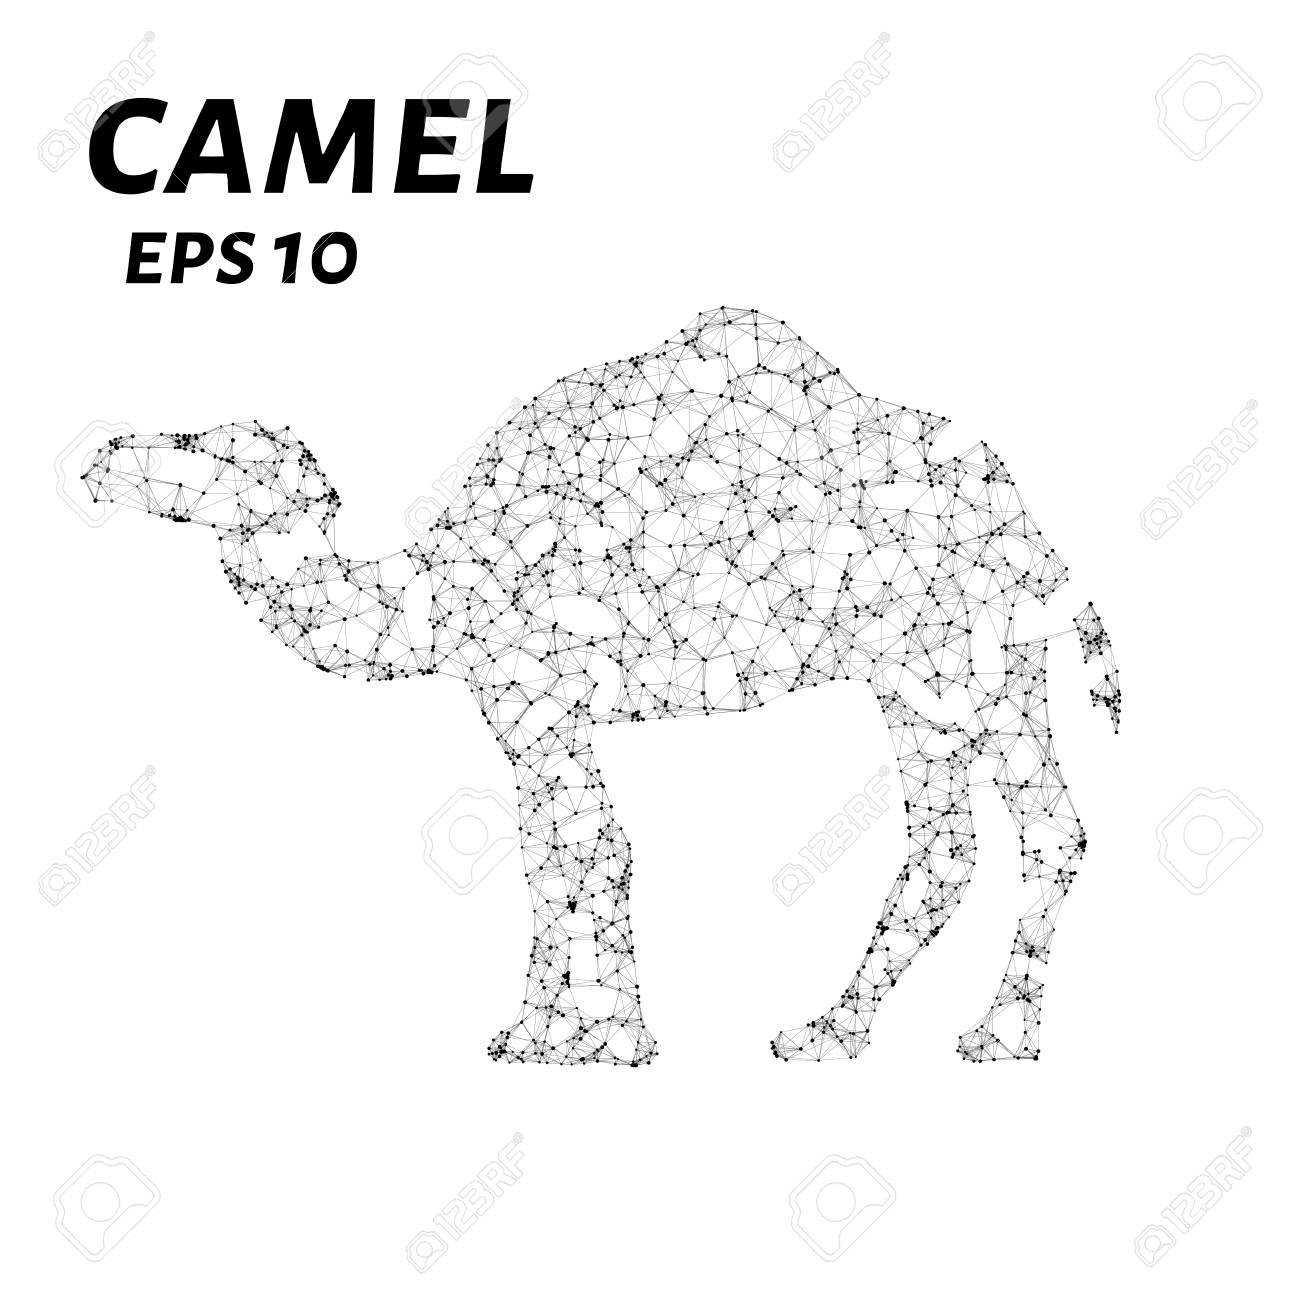 Camel consists of points, lines and triangles  The polygon shape